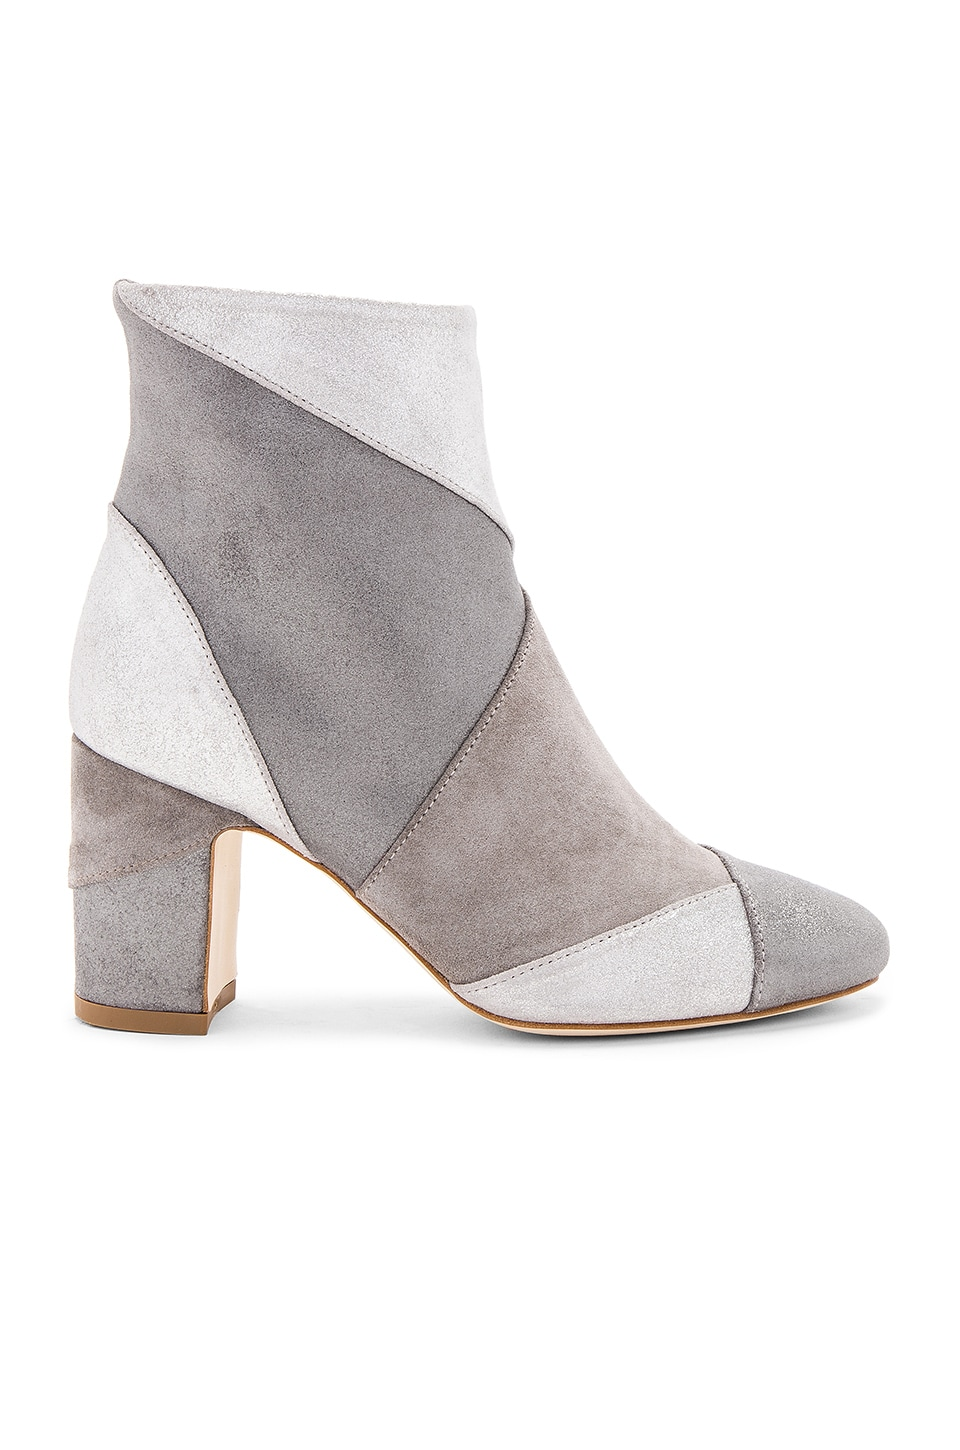 Polly Plume Ally Keywest Booties in Silver